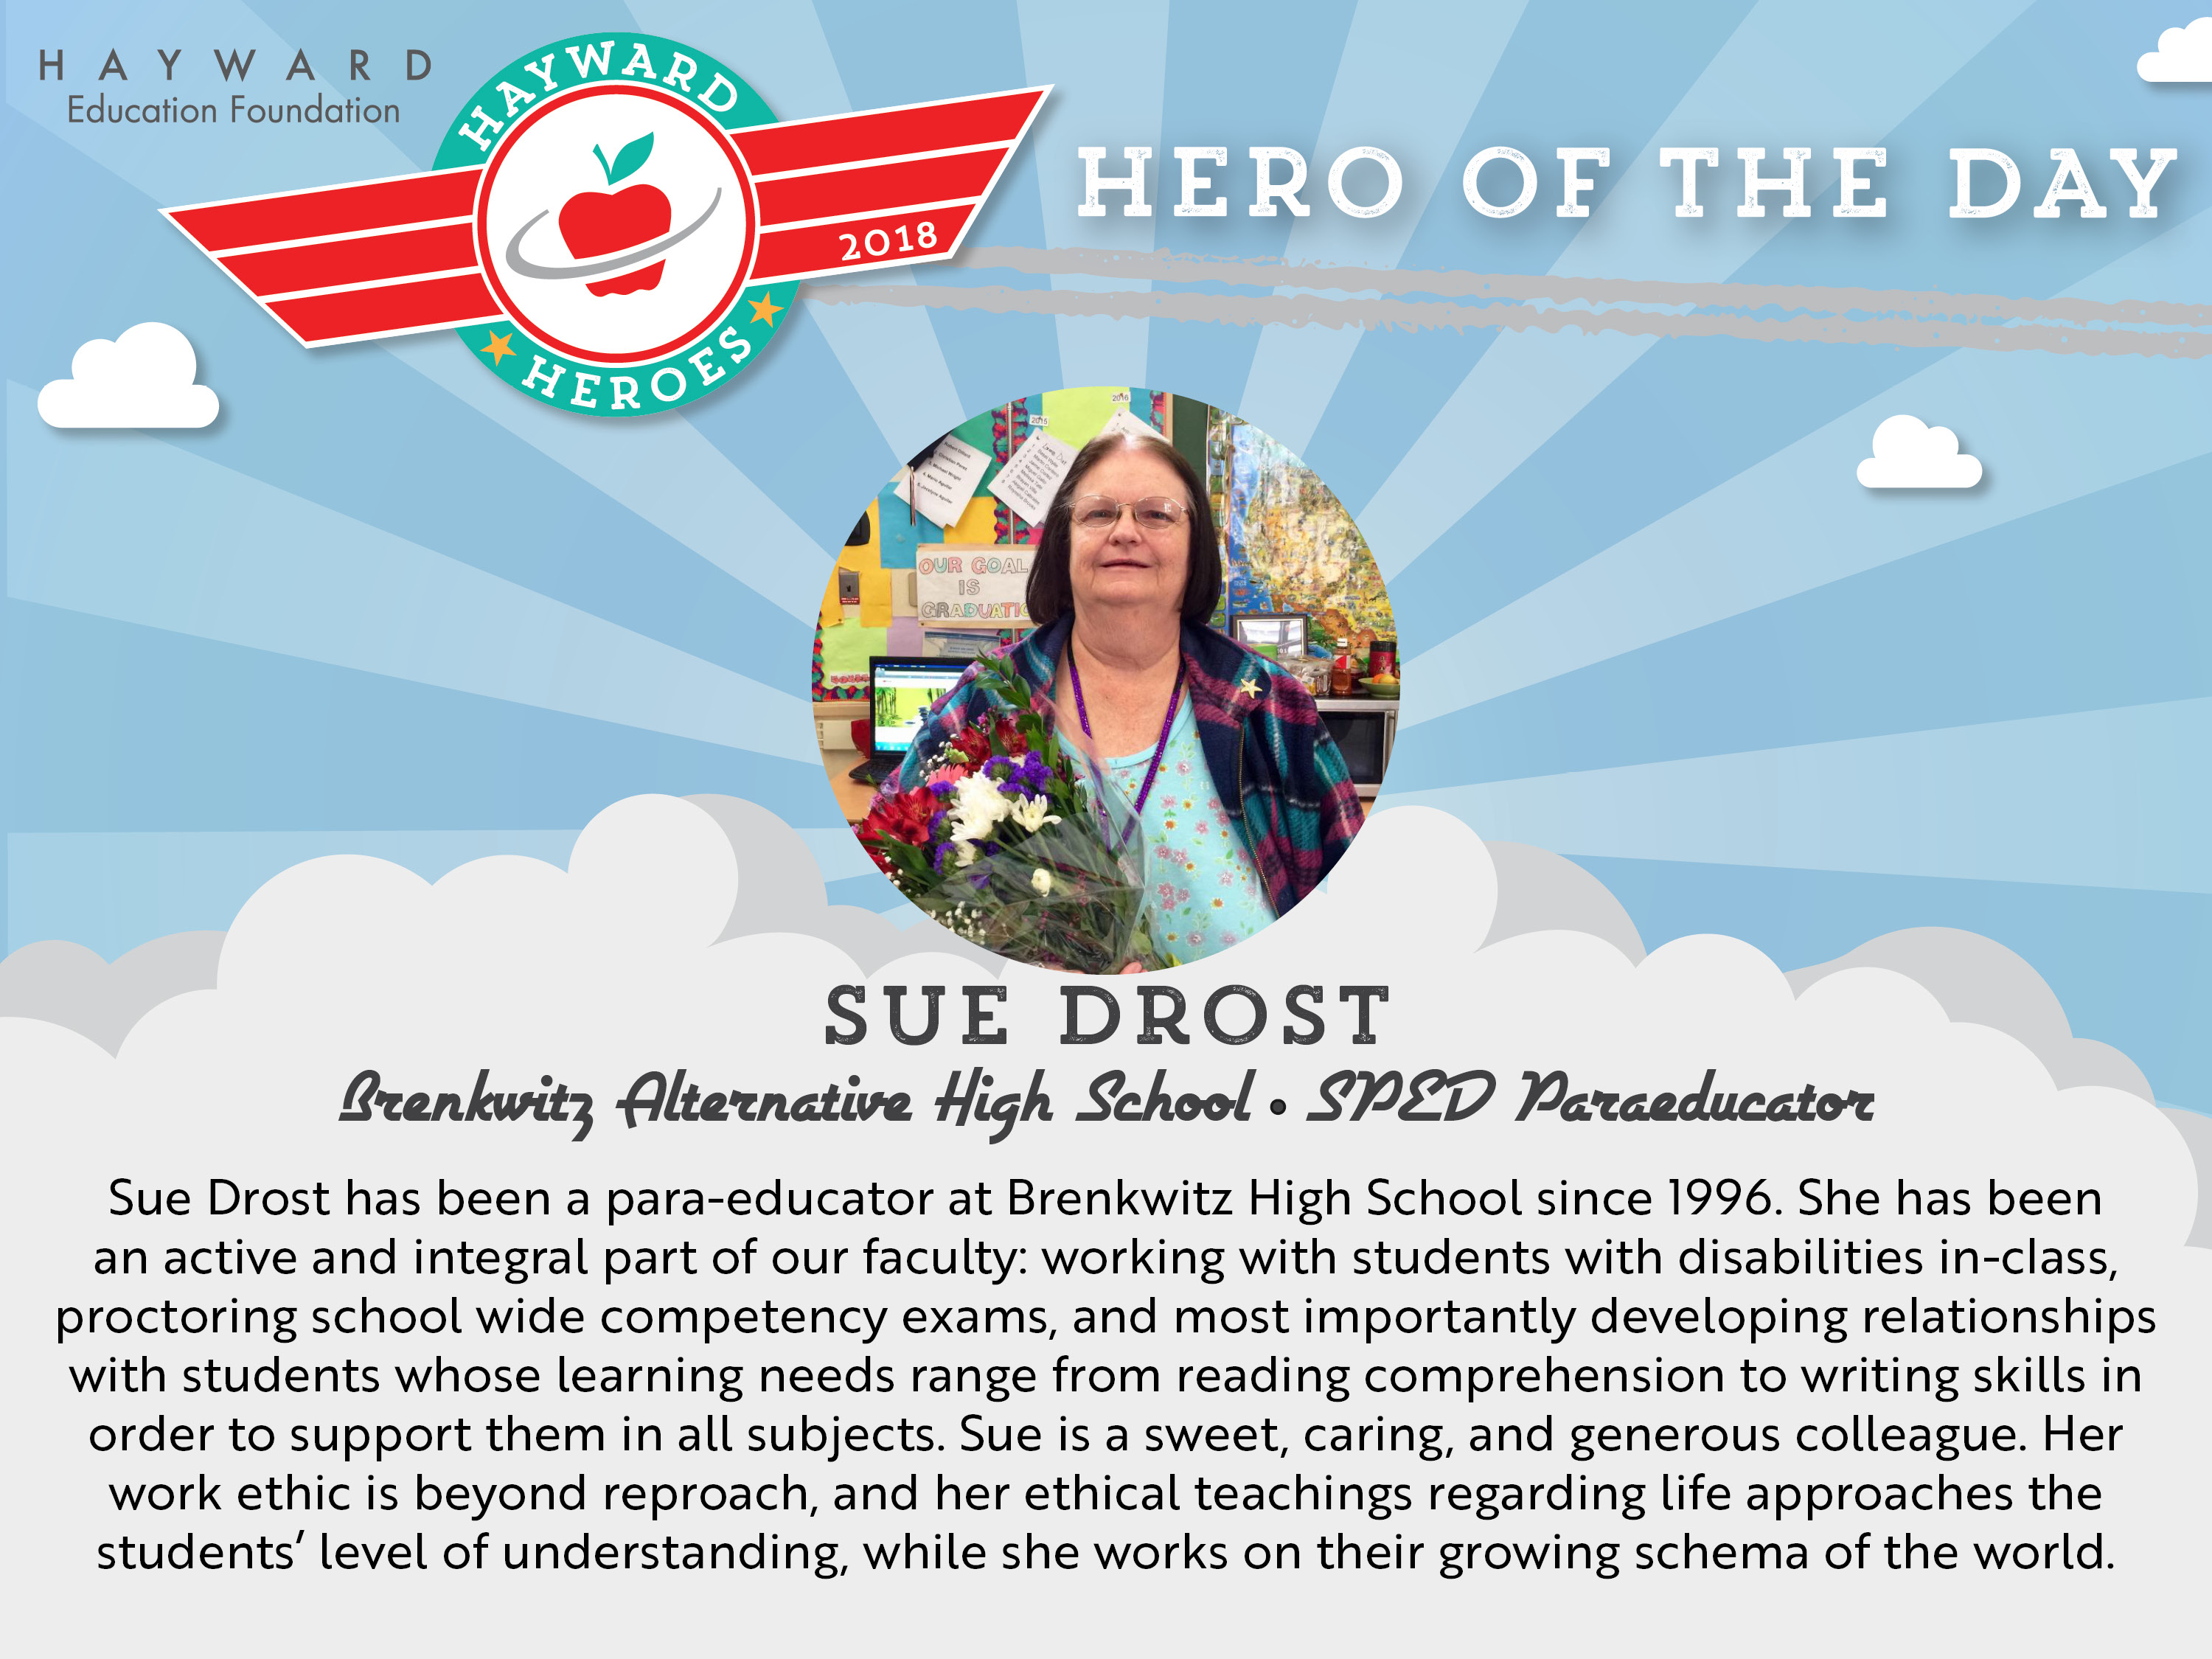 Hero a Day Slides_Drost Sue